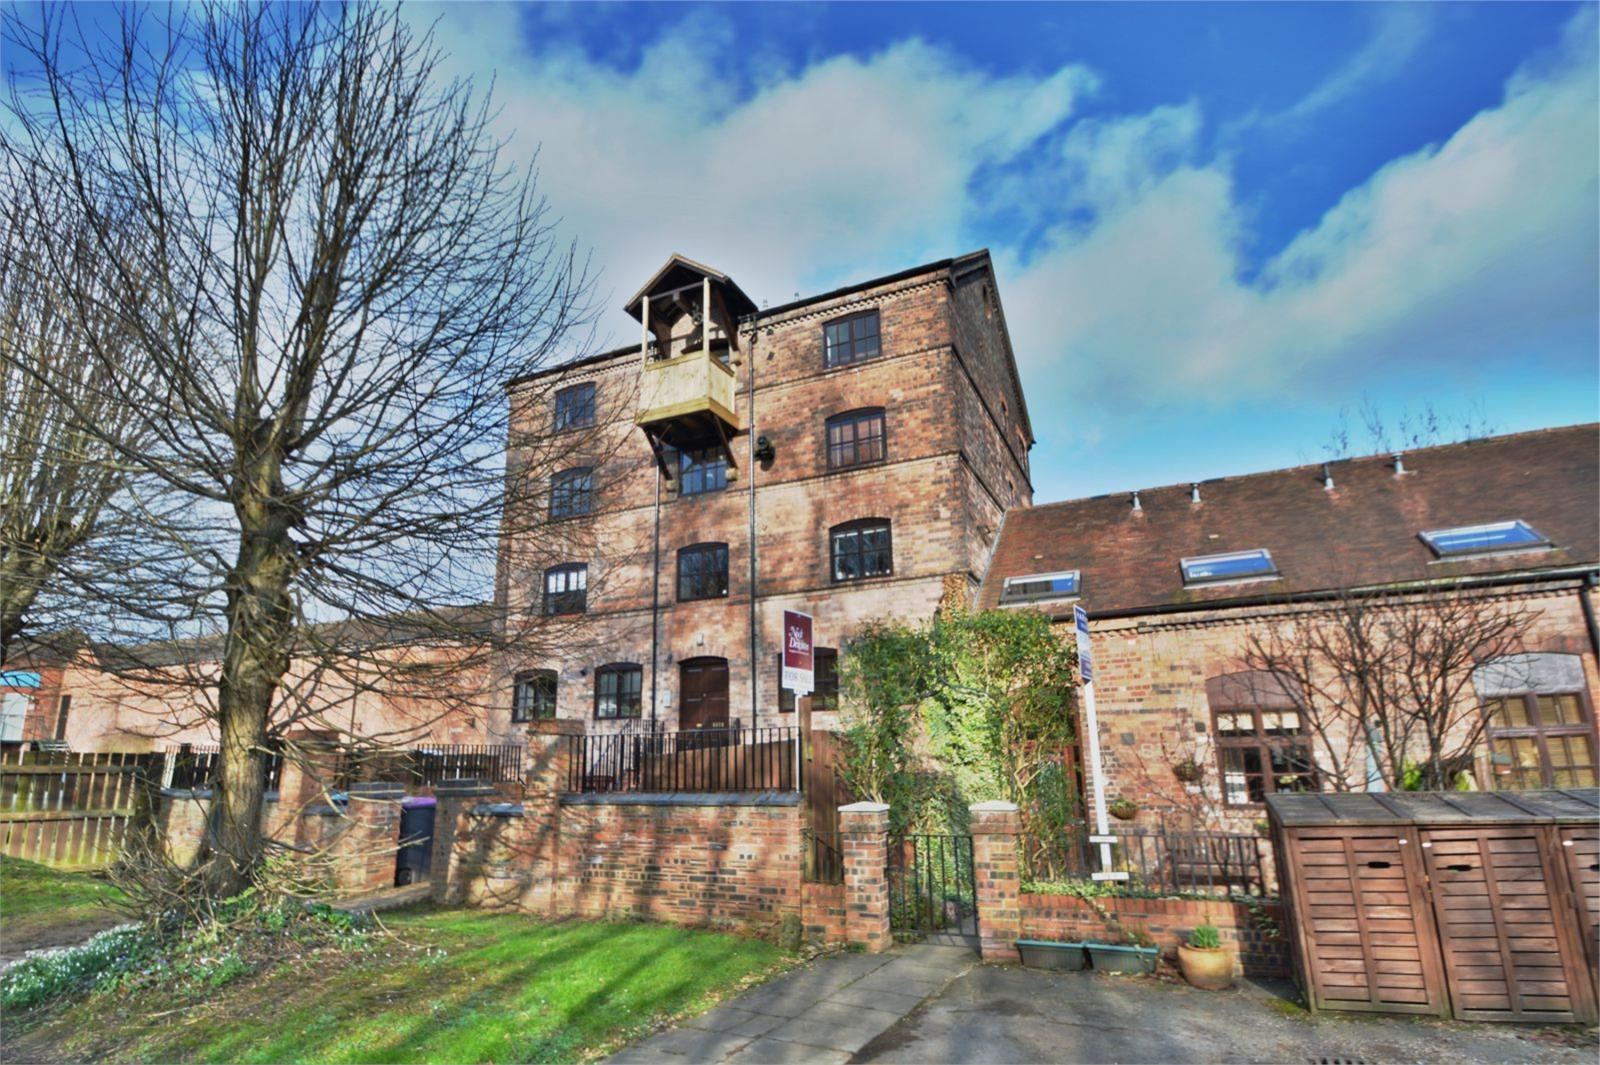 1 Bedroom Flat for sale in 6 Jackfield Mill, Jackfield, Telford, Shropshire, TF8